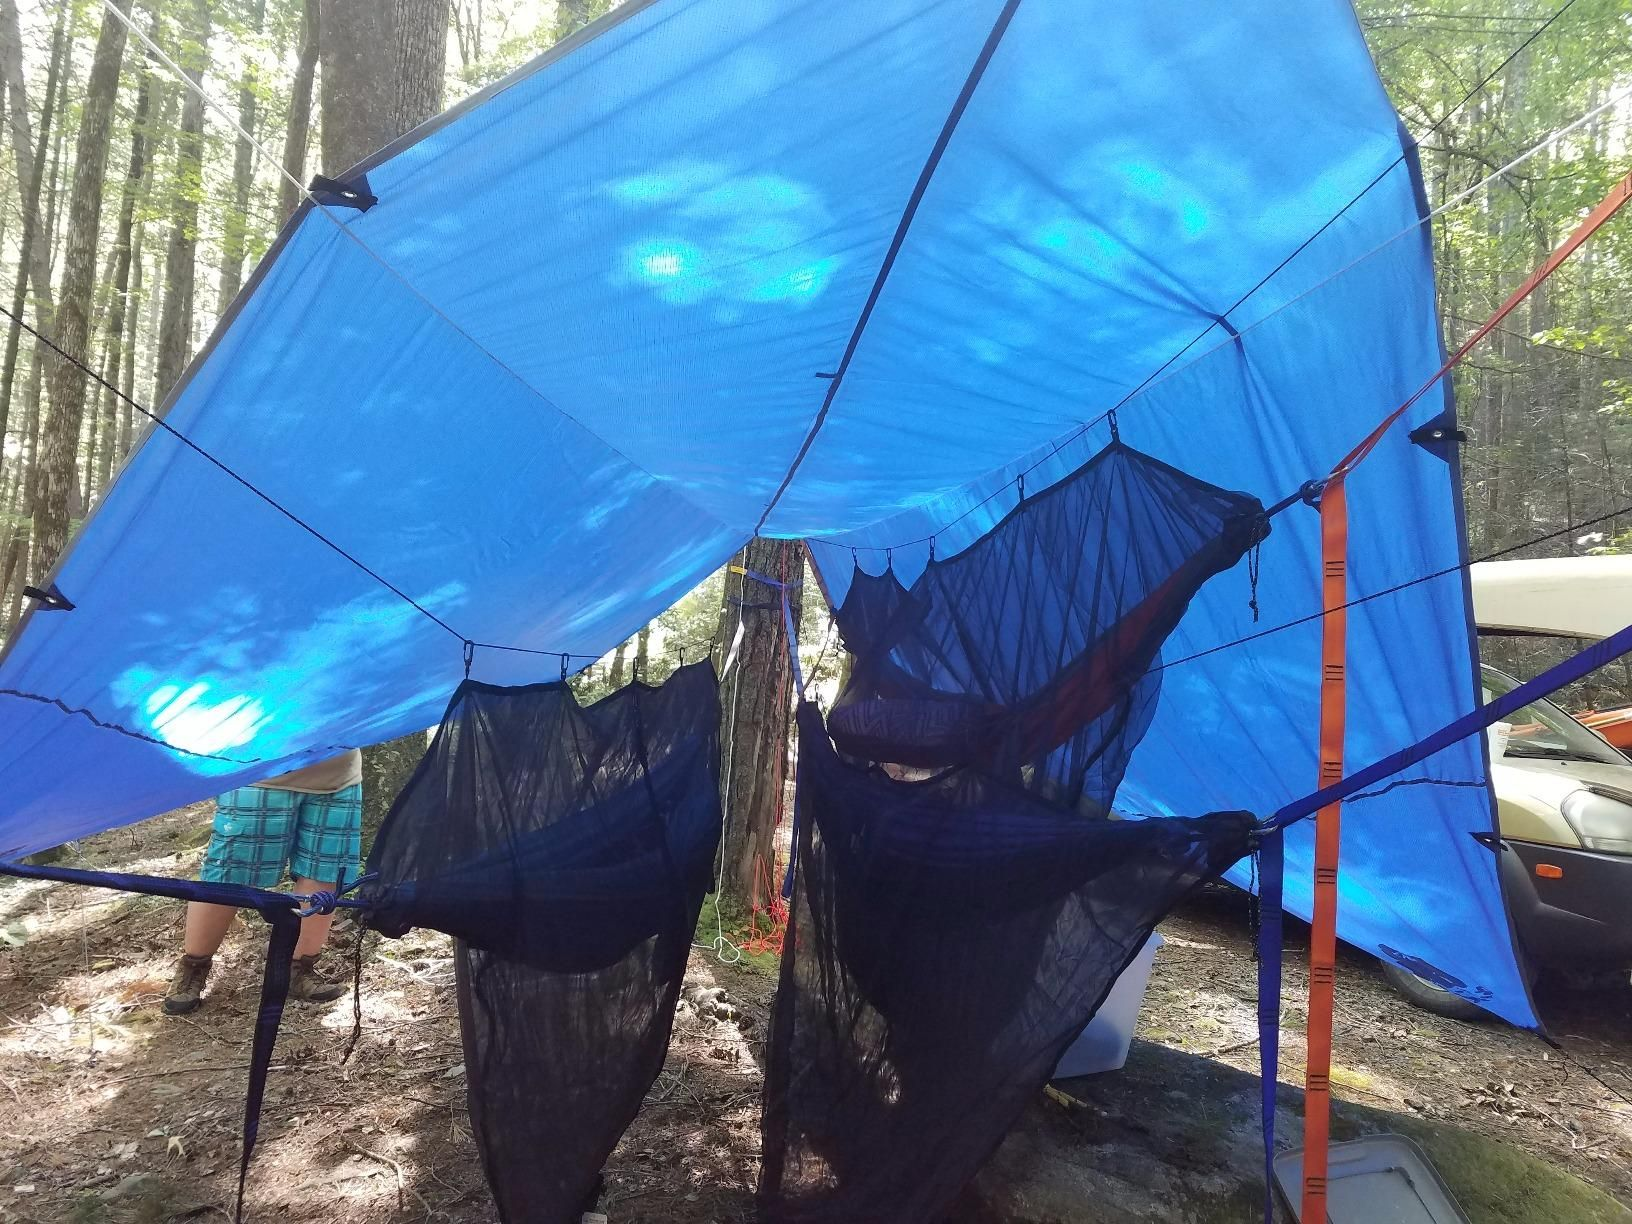 Amazon.com Amazon Customeru0027s review of CHILL GORILLA 12u0027 HAMMOCK RAIN FLY TENT & Amazon.com: Amazon Customeru0027s review of CHILL GORILLA 12u0027 HAMMOCK ...